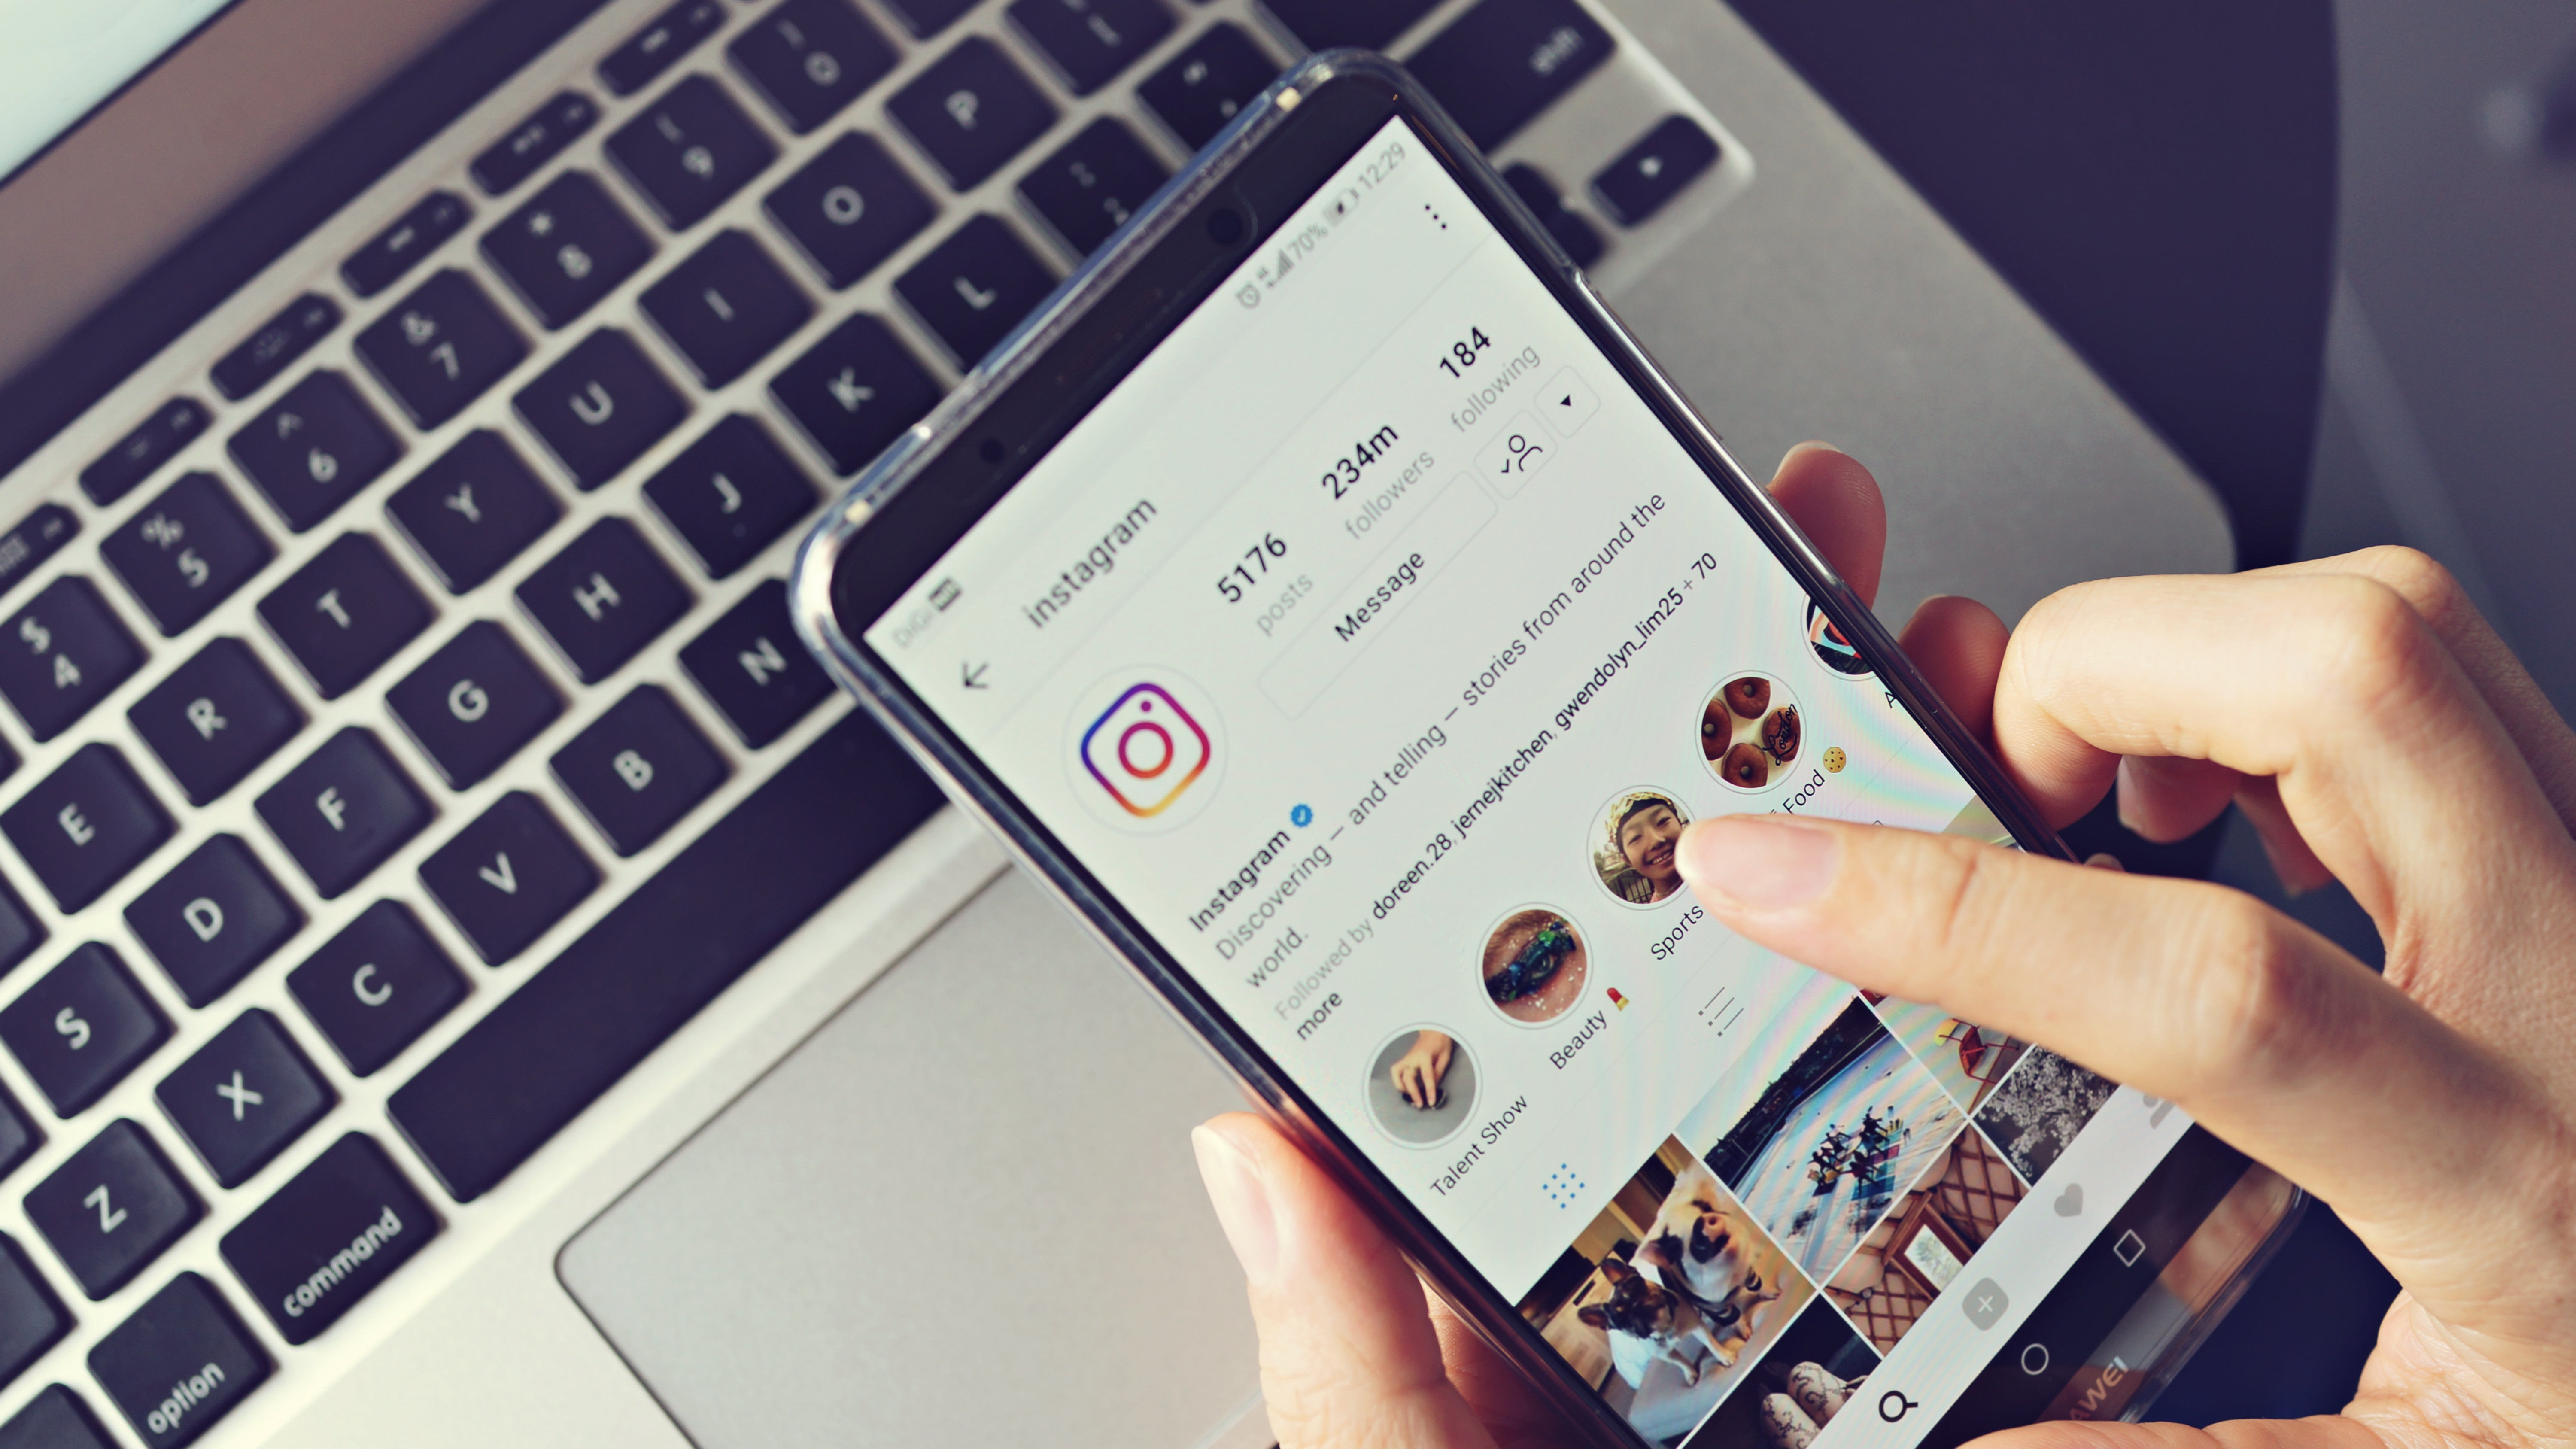 How To Get Your Instagram 'Top 9' This Year